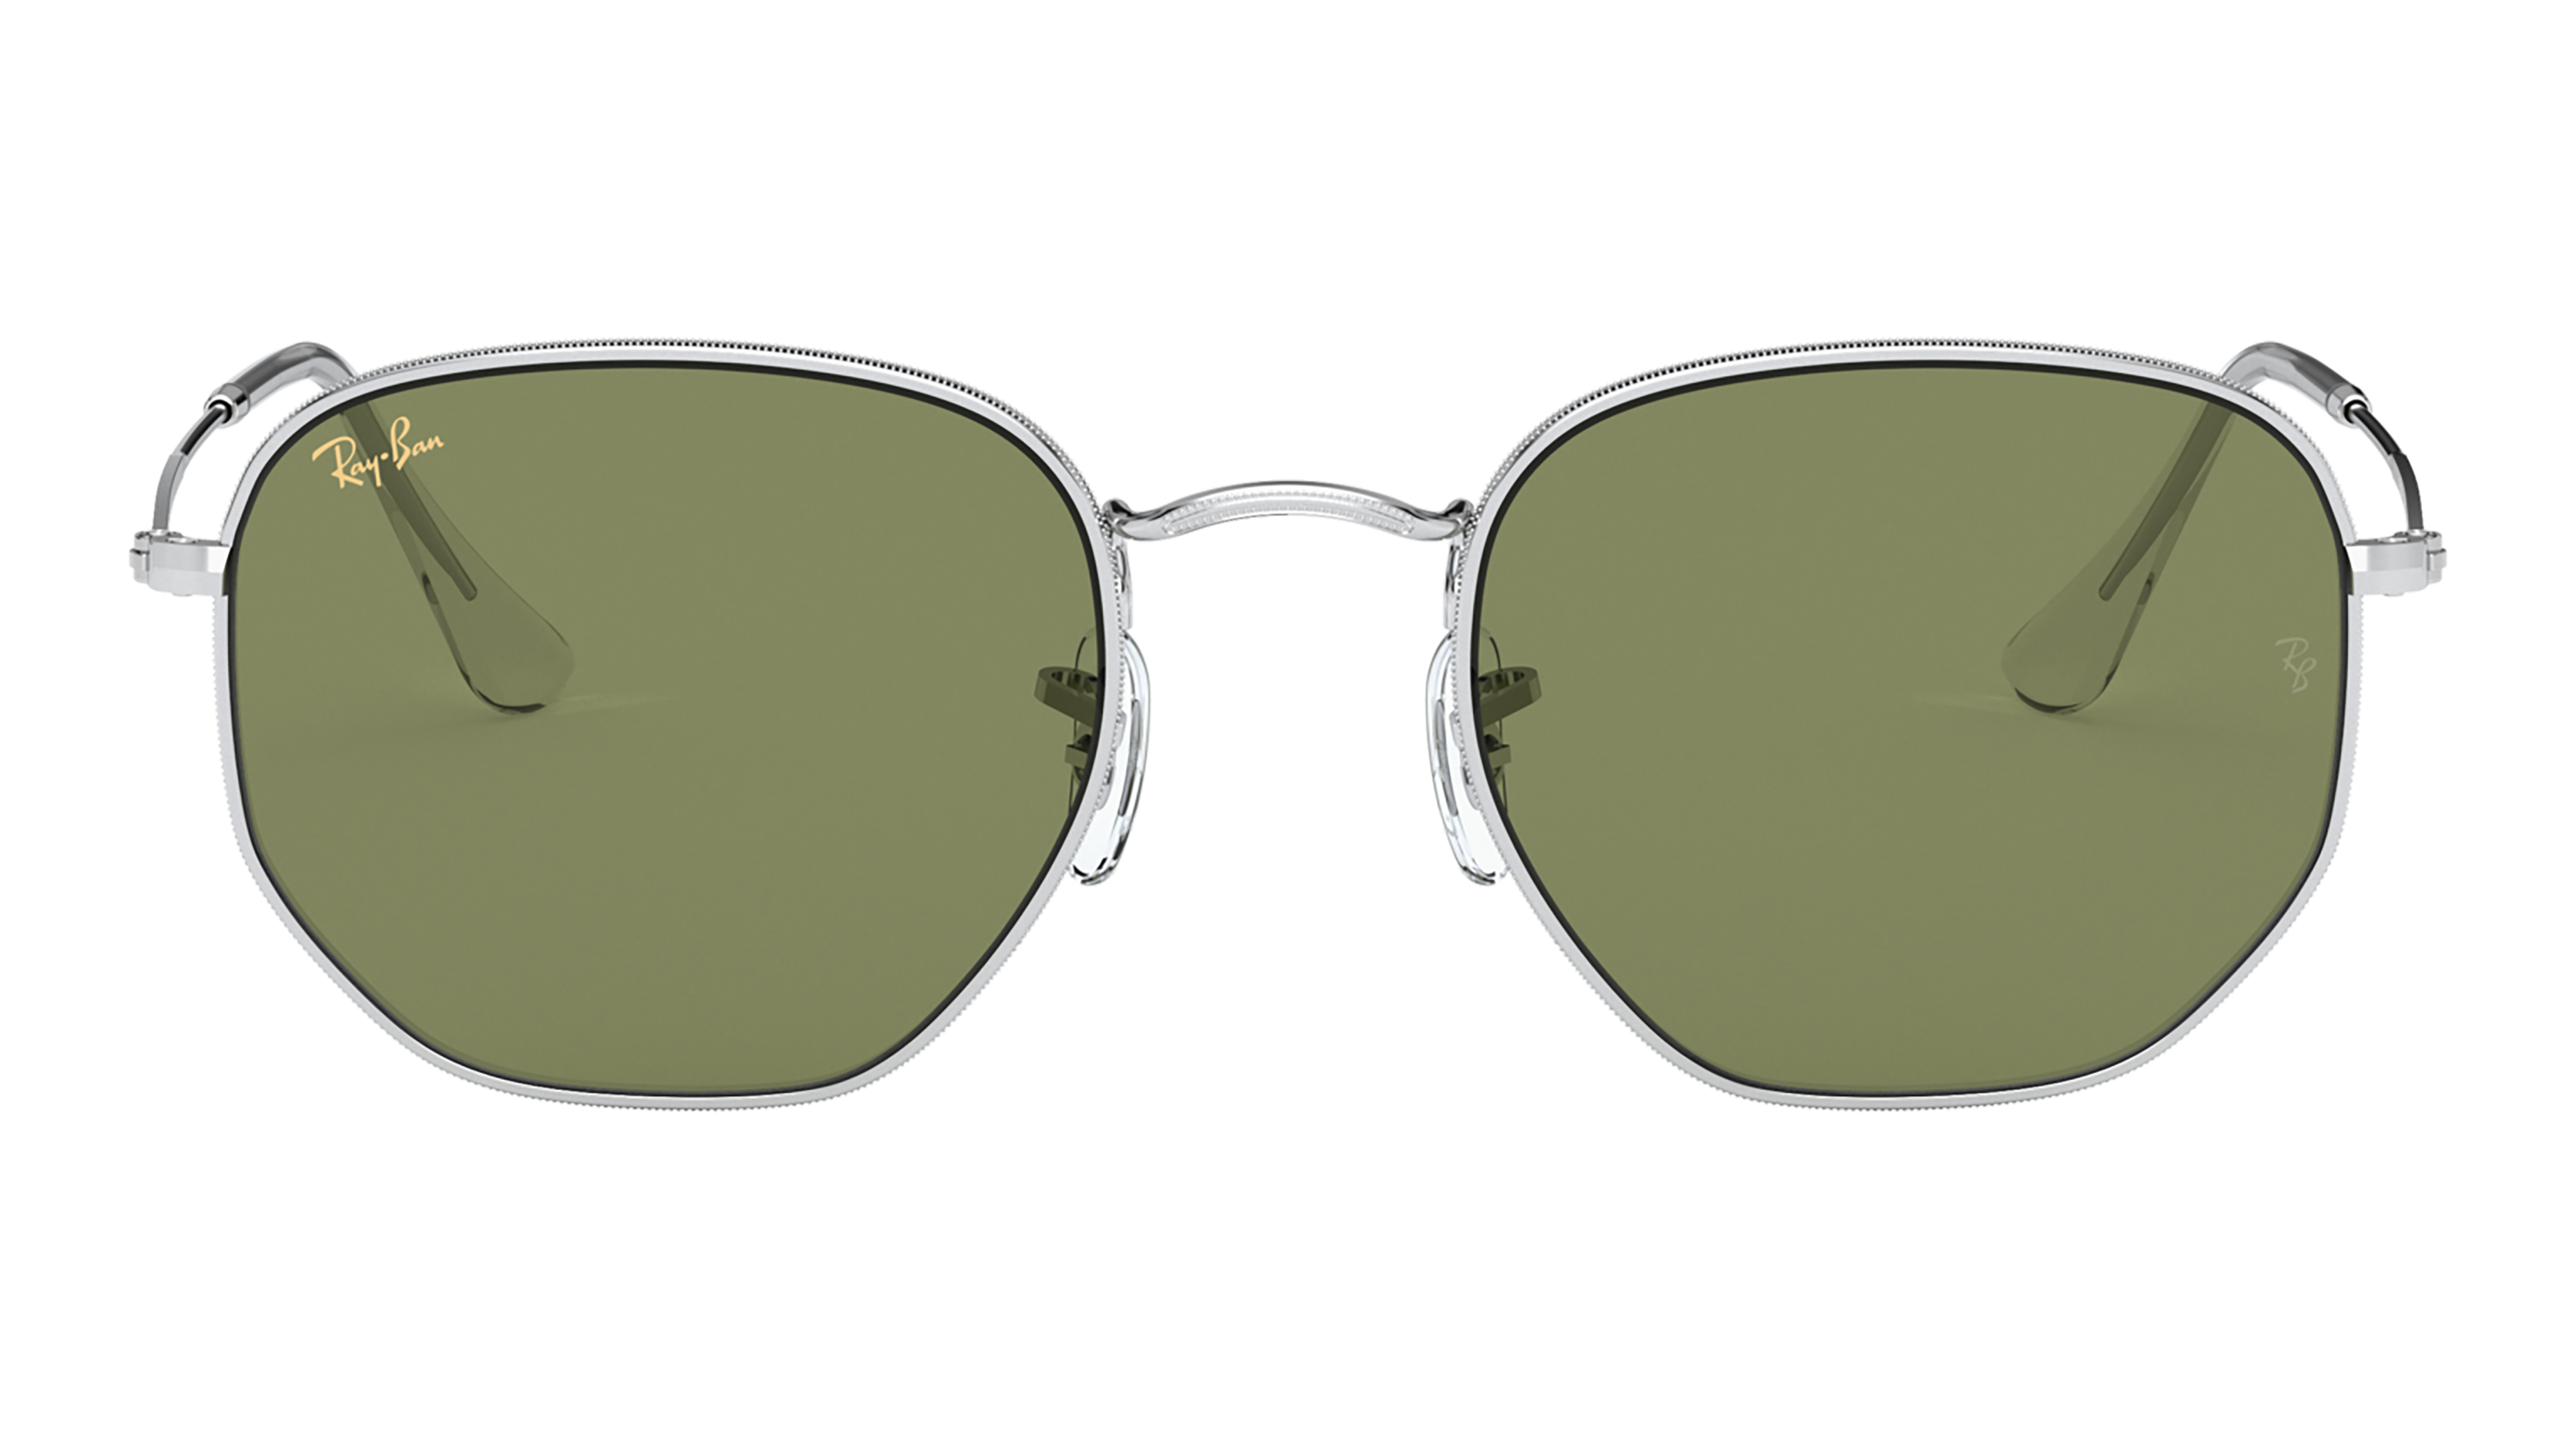 Front Ray-Ban Ray-Ban 0RB3548 91984E 54/21 Zilver/Groen